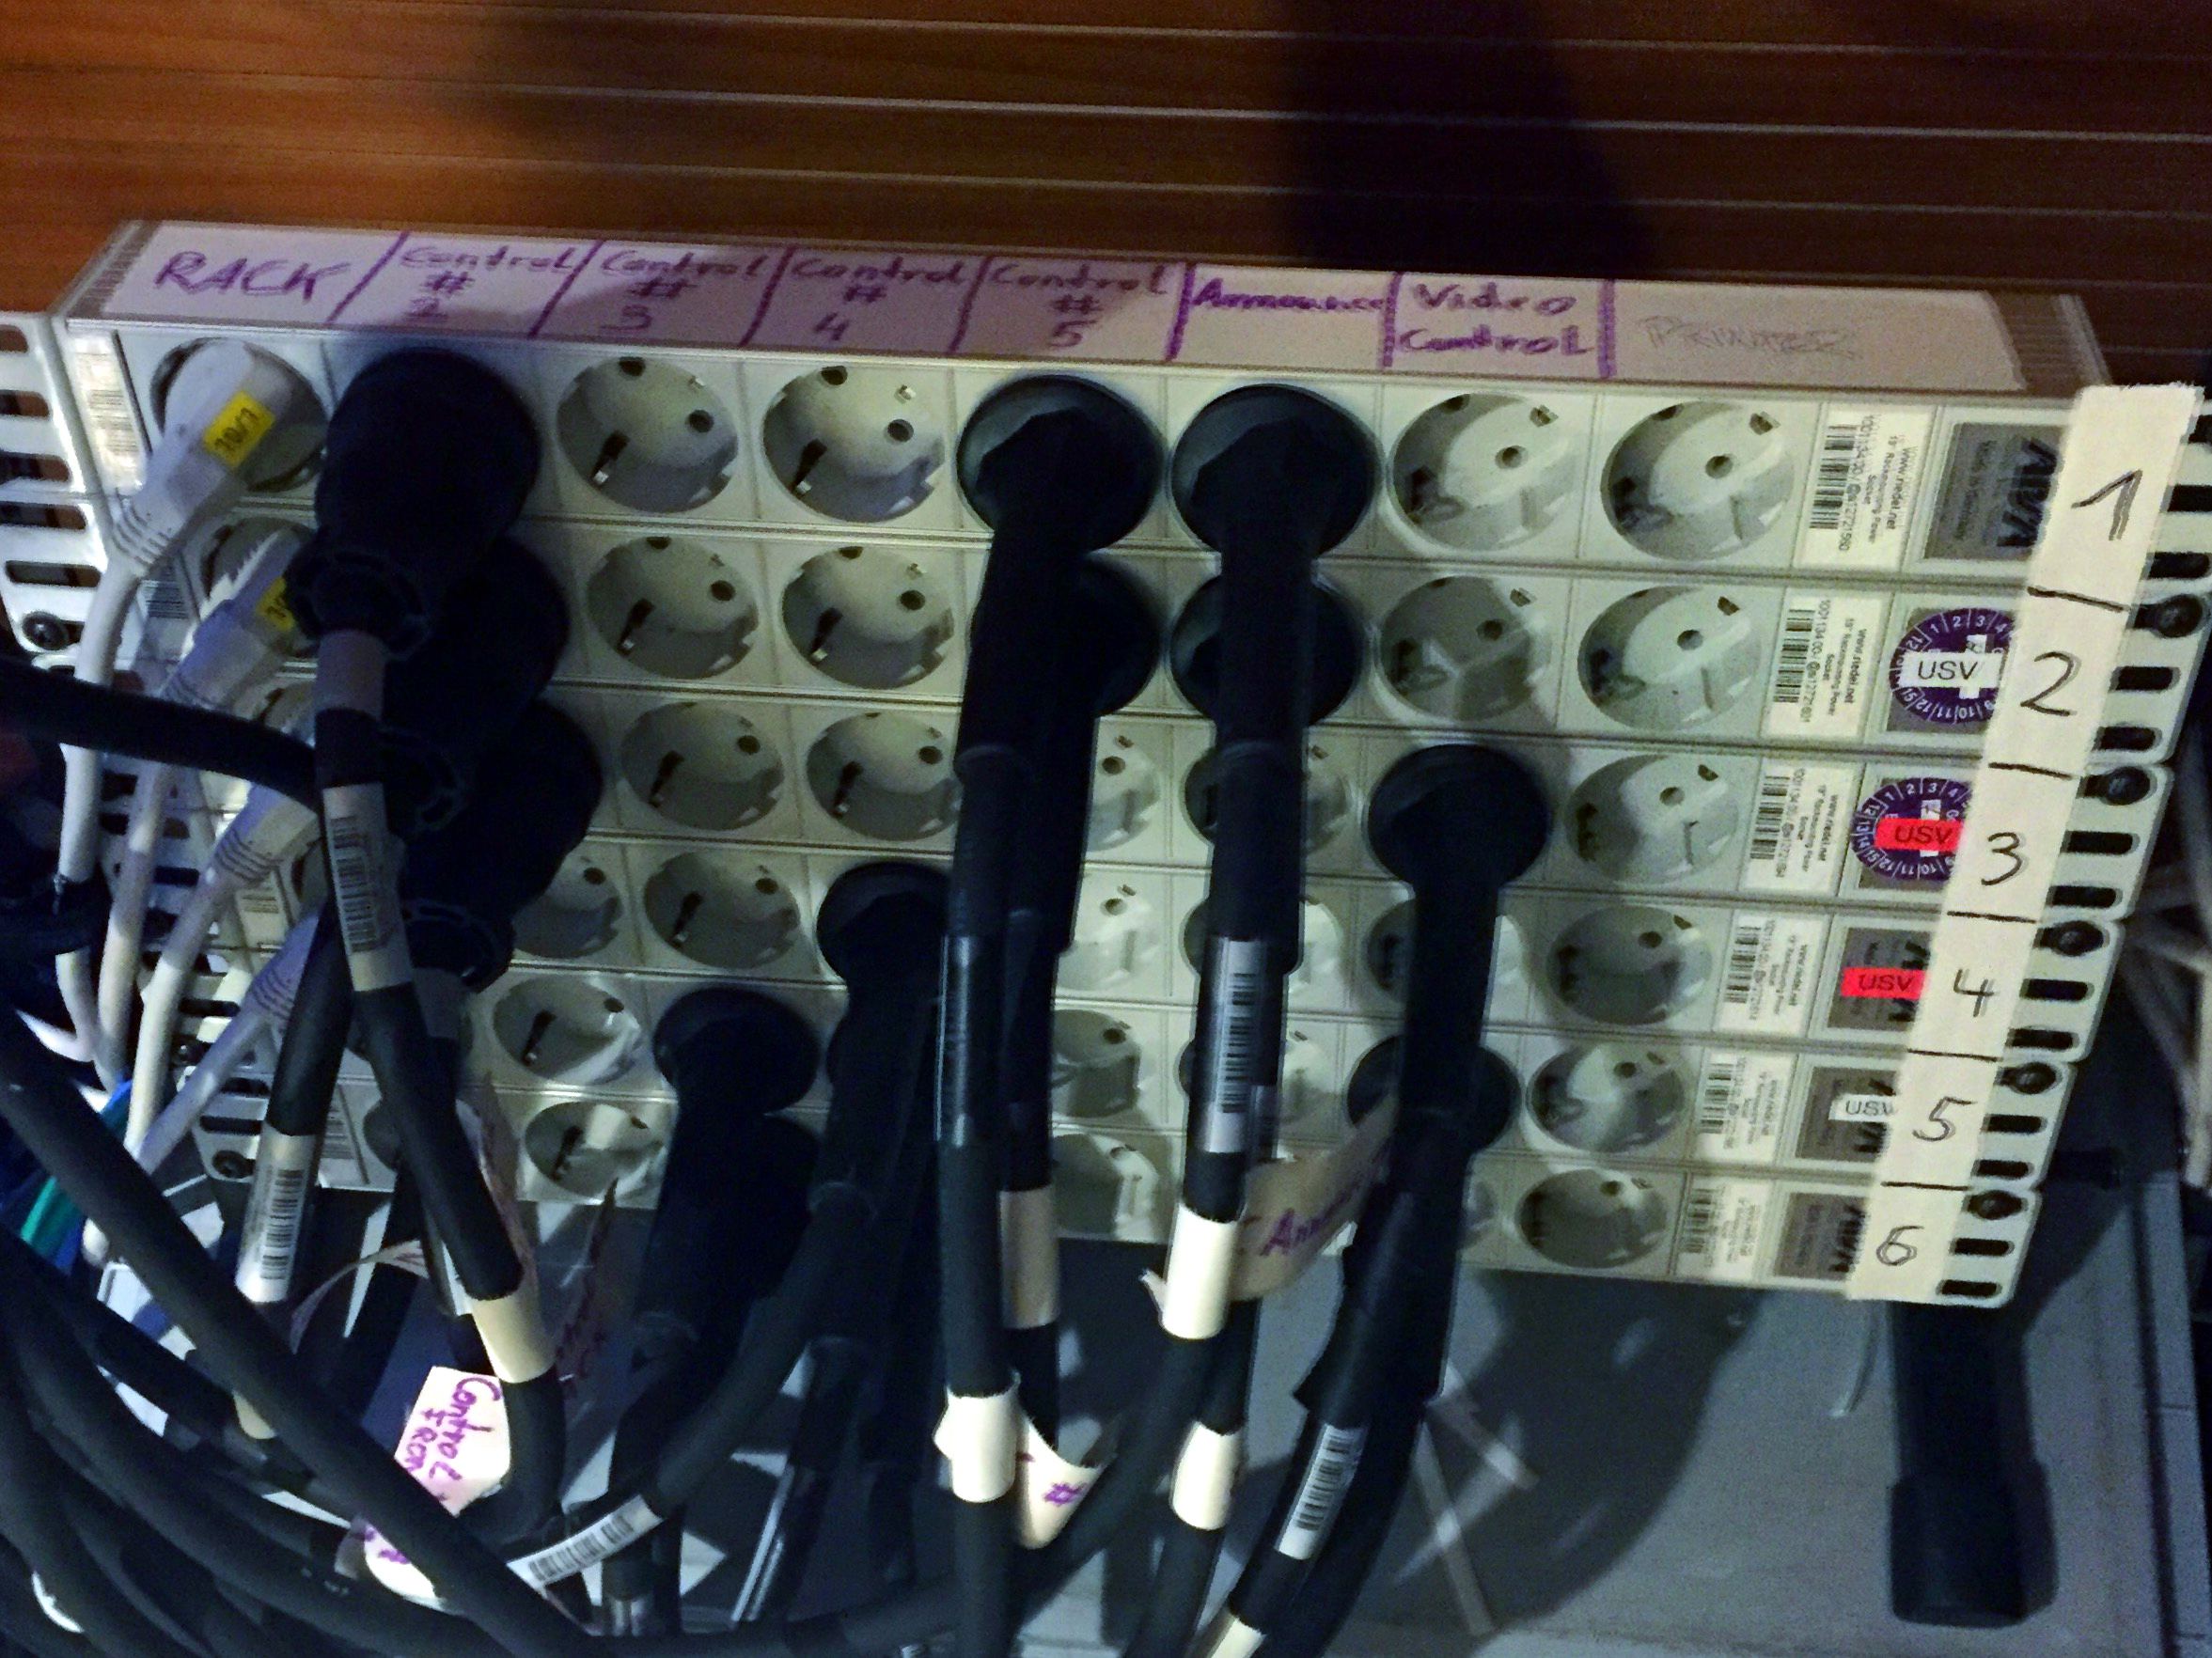 This is the power distribution for the control booths. Each power strip is the output of a UPS. Each column of connectors is assigned to the control rooms and the Nodes.